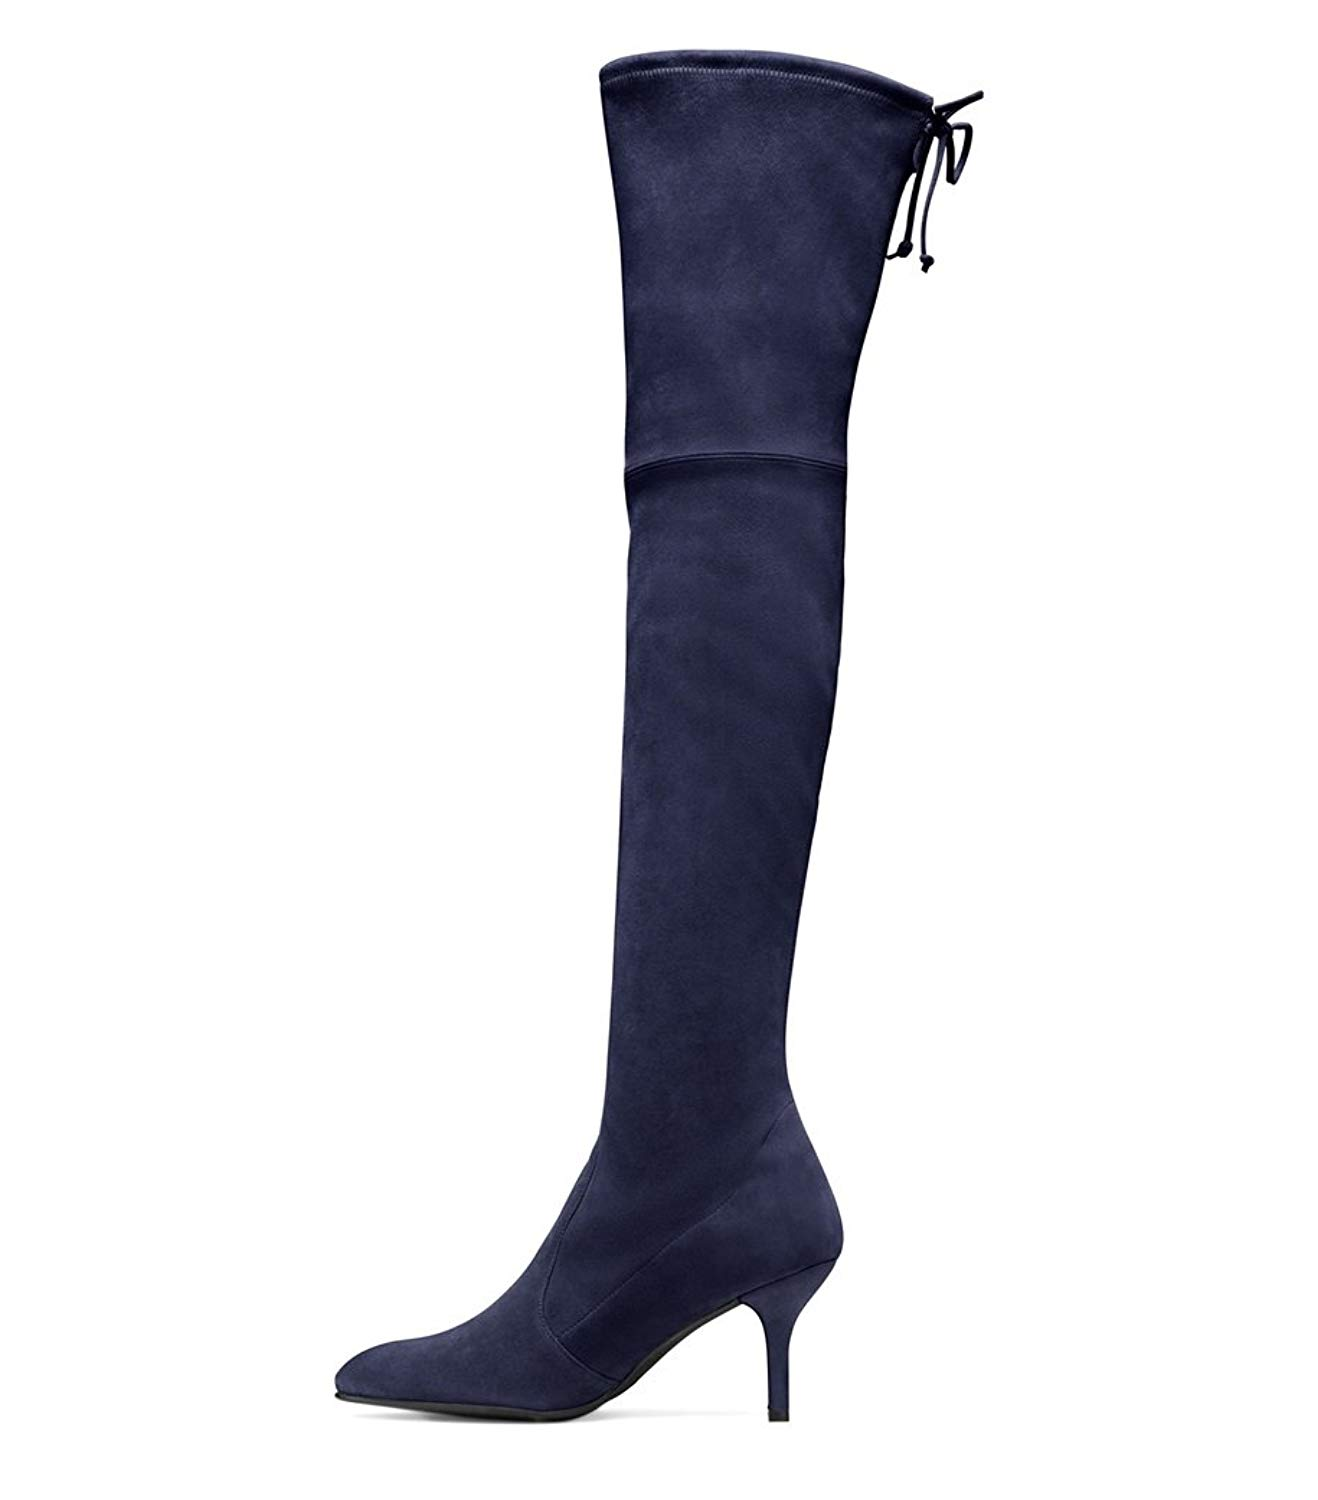 719cd7a4b2d Cheap Stiletto Thigh Boots, find Stiletto Thigh Boots deals on line ...